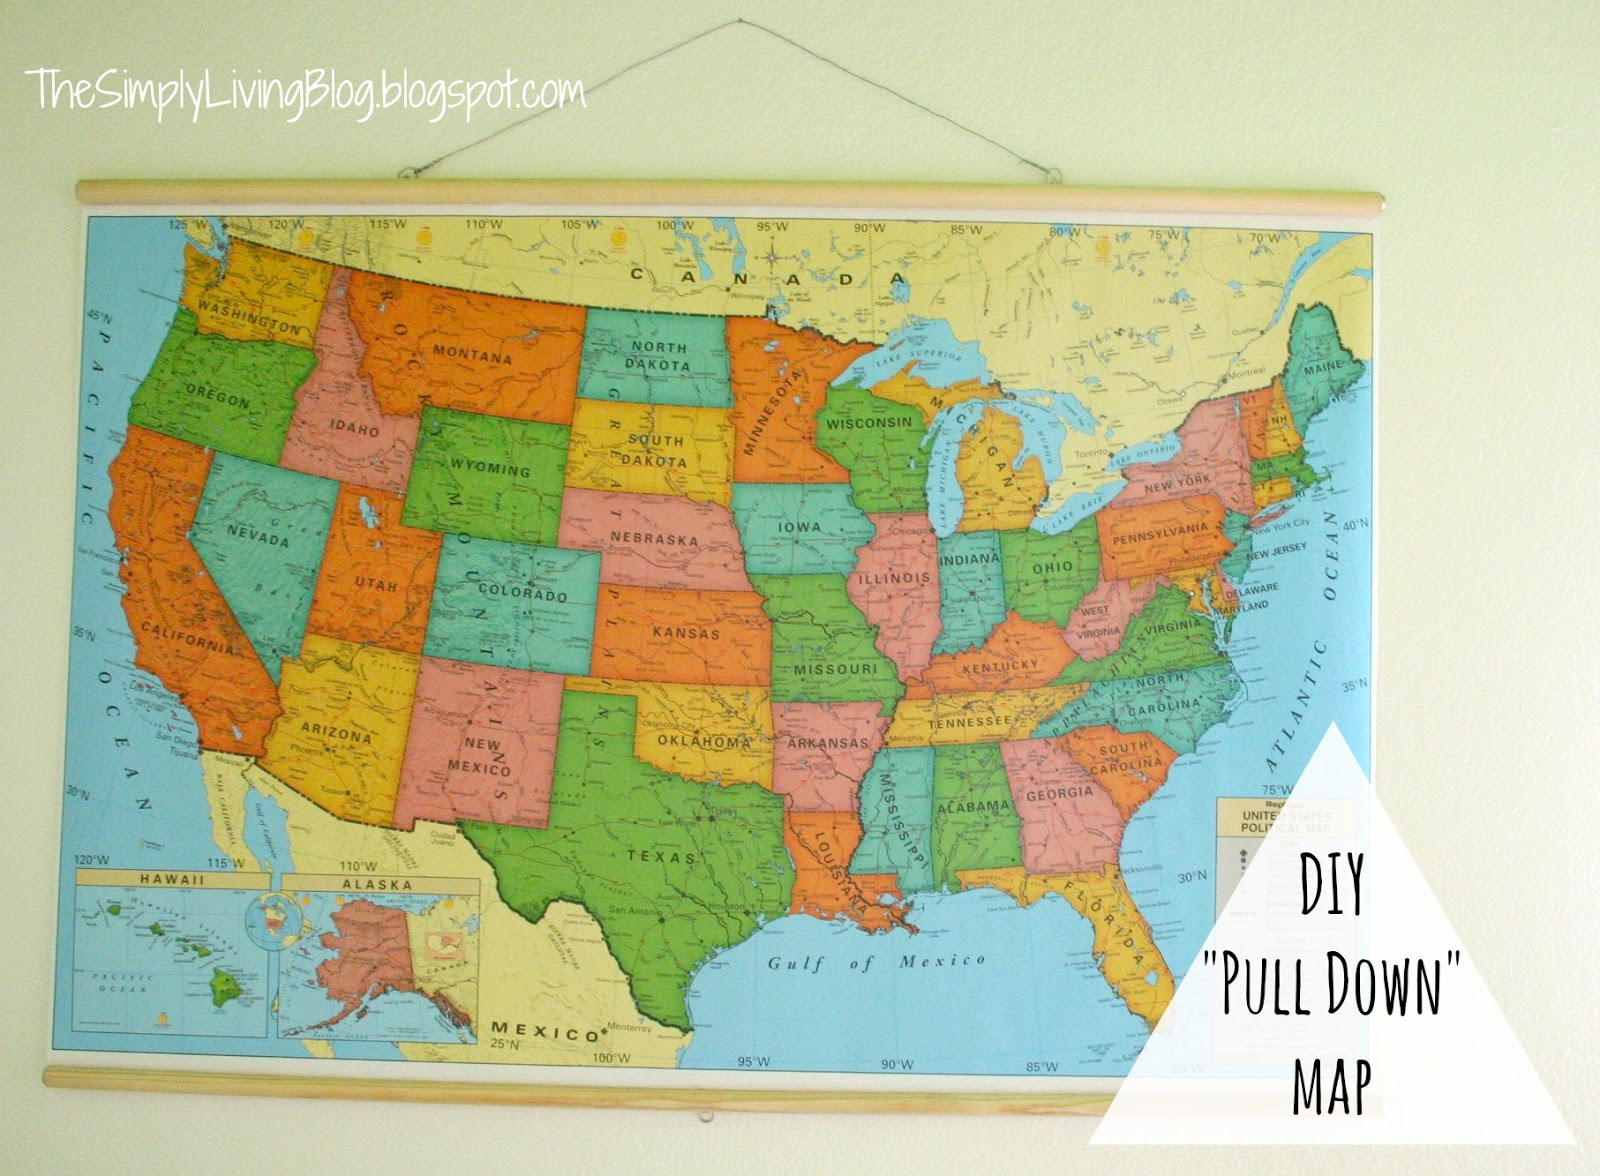 Pull Down Map Simply Living : DIY